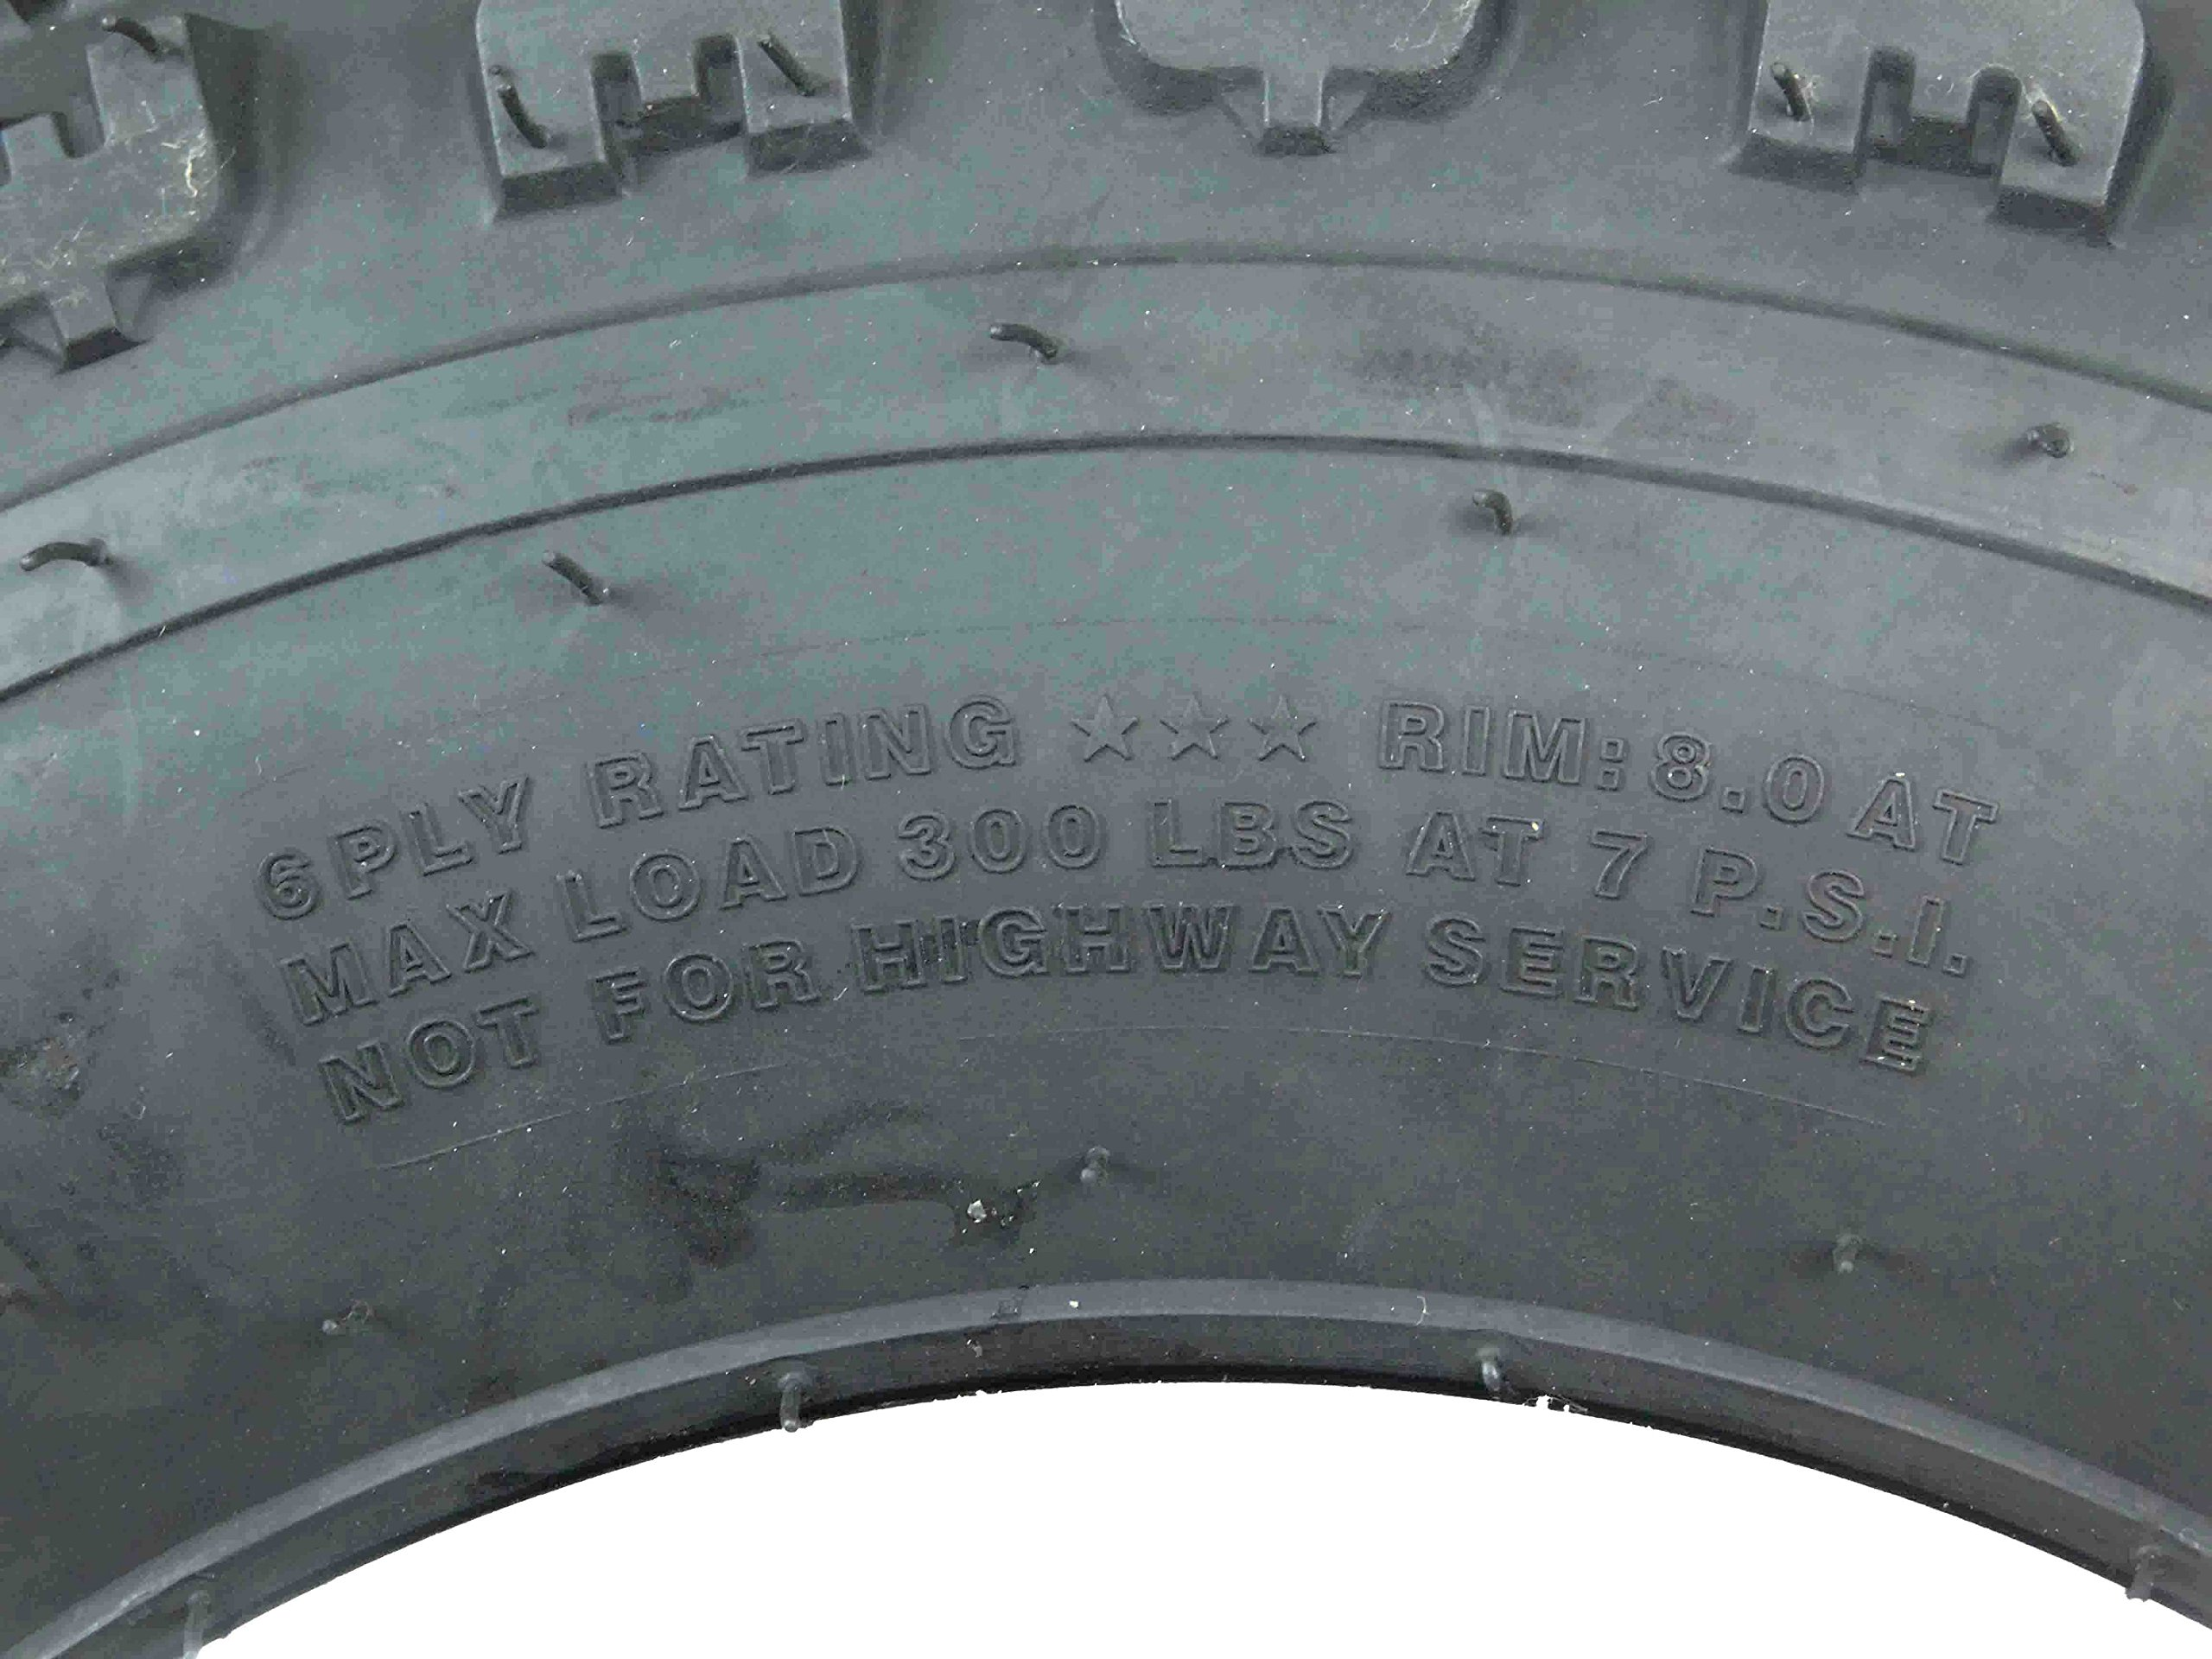 New MASSFX ATV Sport Quad Tires 21X7-10 20X10-9 6 Ply Dual Compound Front Rear For Yamaha Raptor Banshee Honda 400ex 450r 660 700 400 450 350 250 (Four Pack two Front 21x7-10 and Two Rear20x10-9 6) by MassFx (Image #9)